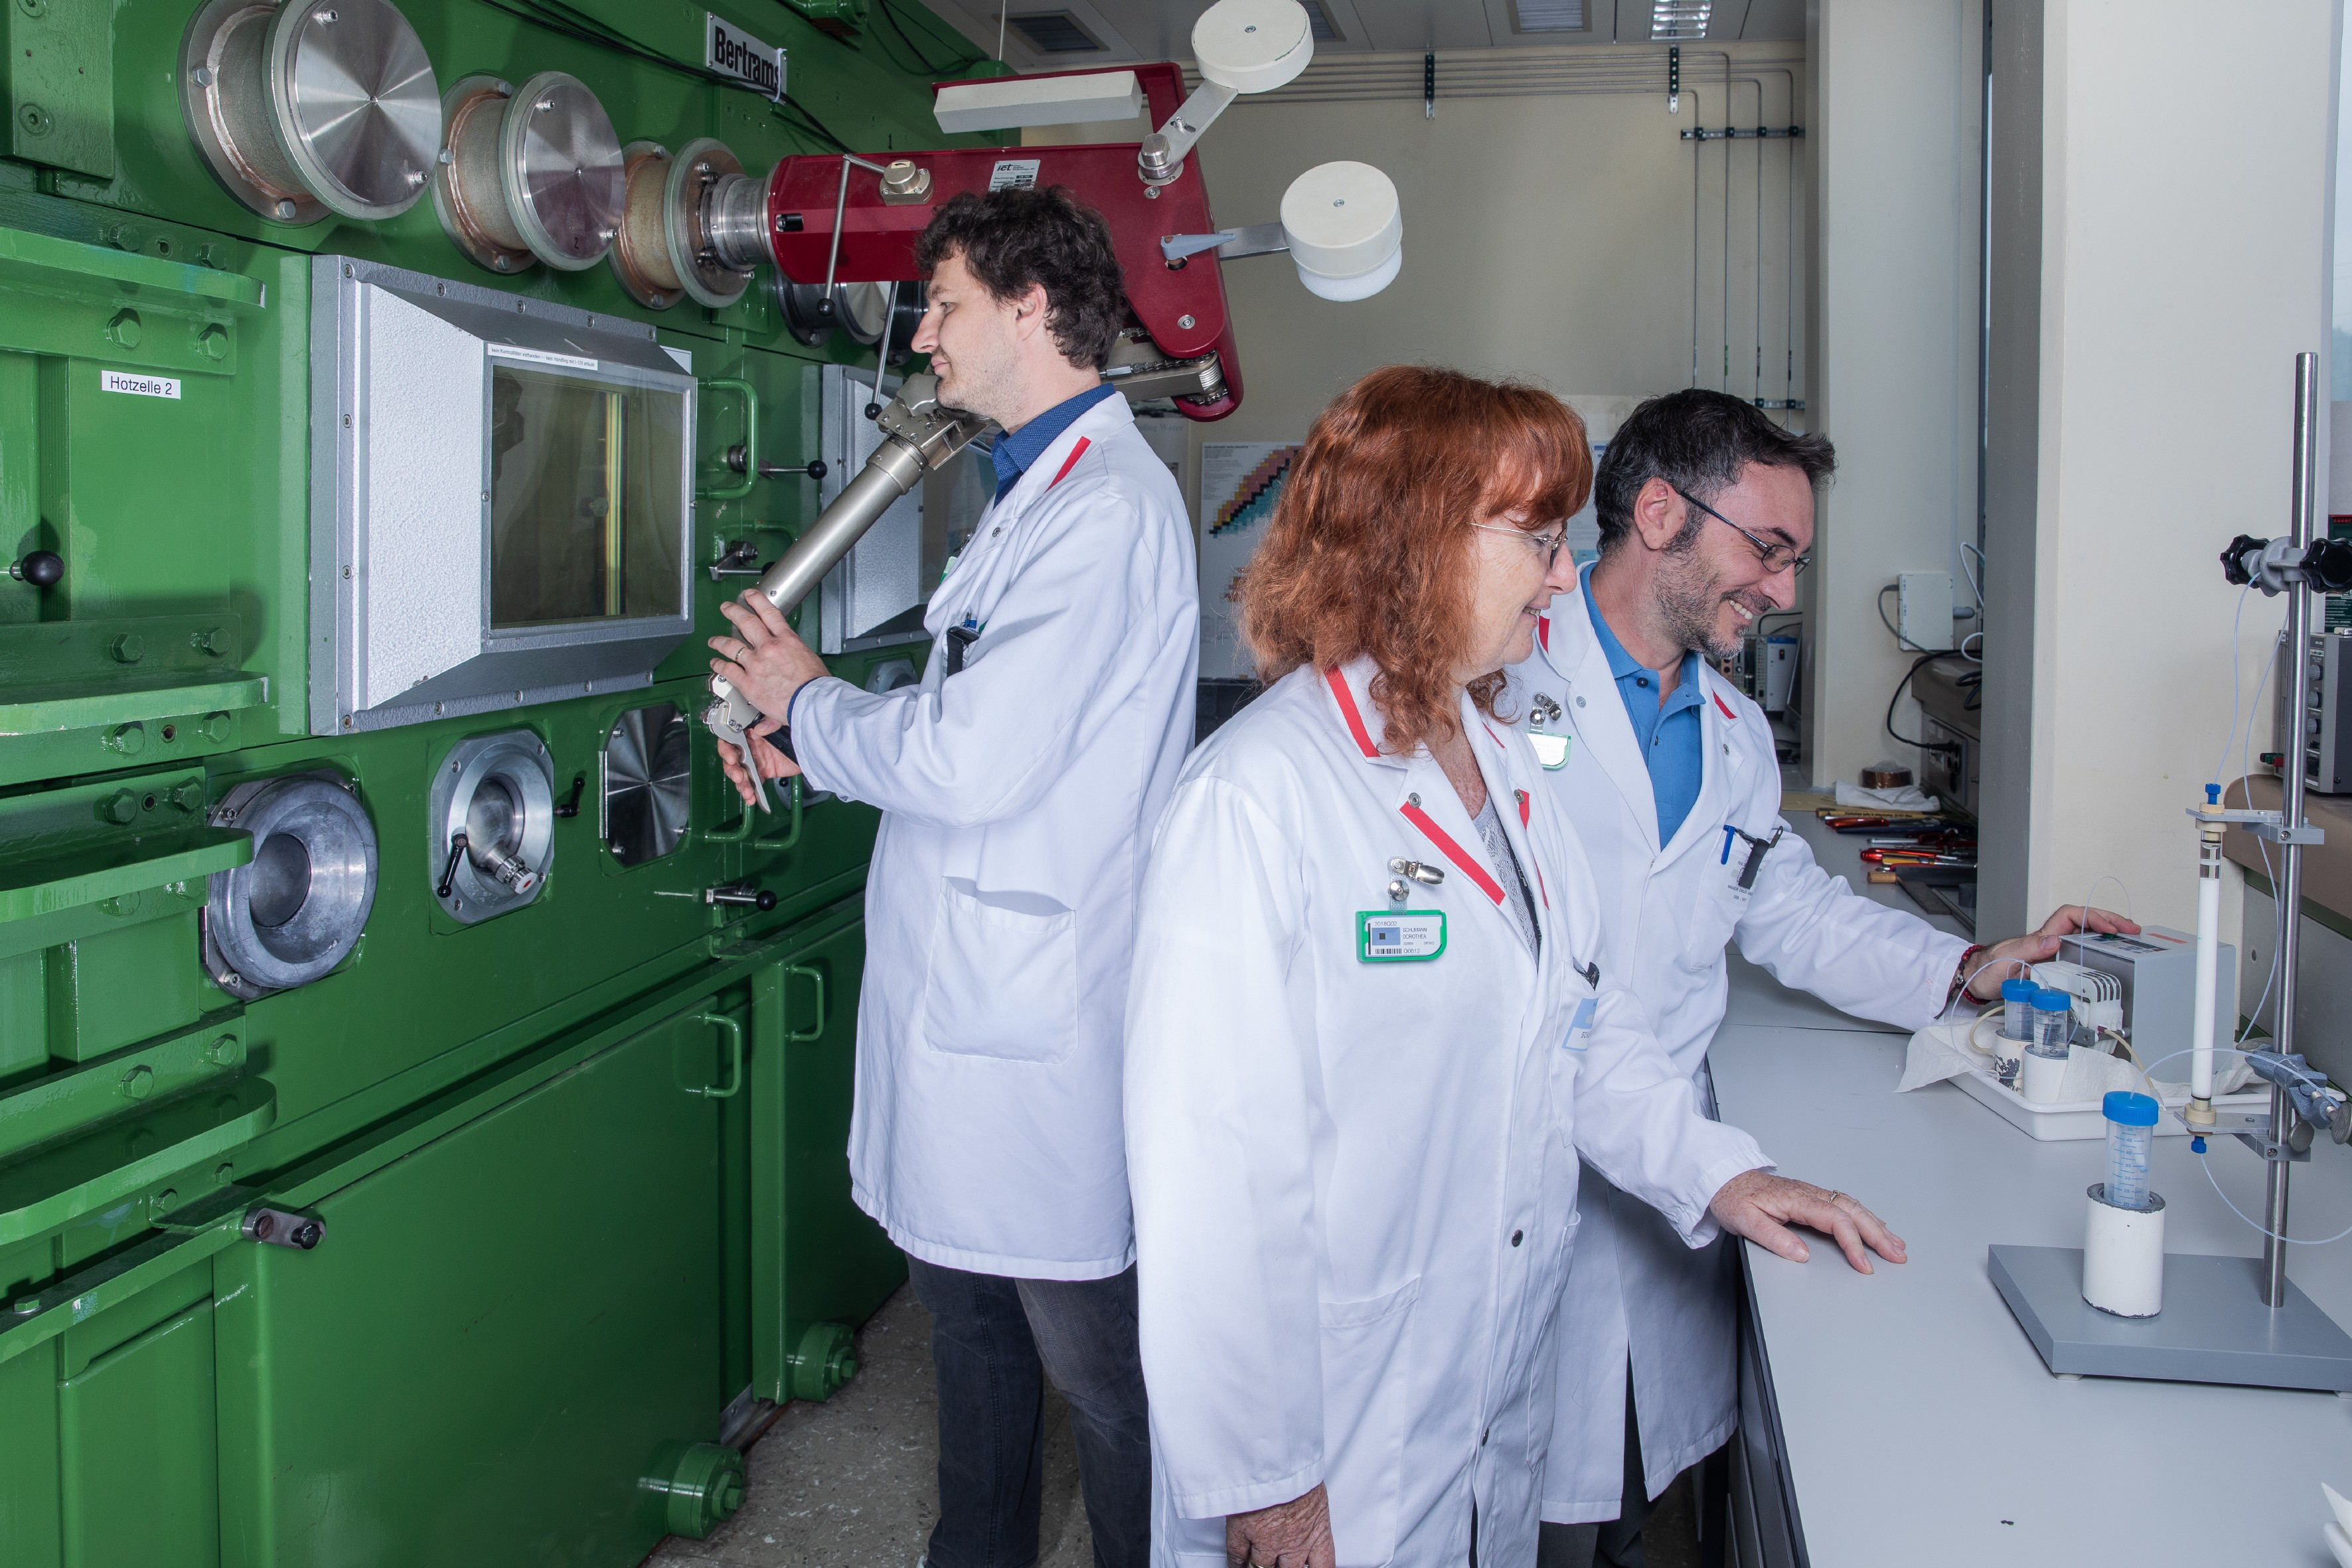 Stephan Heinitz, Dorothea Schumann and Emilio Maugeri (from left to right) of the Isotope and Target Chemistry research group in their laboratory. (Photo: Paul Scherrer Institute/Mahir Dzambegovic)